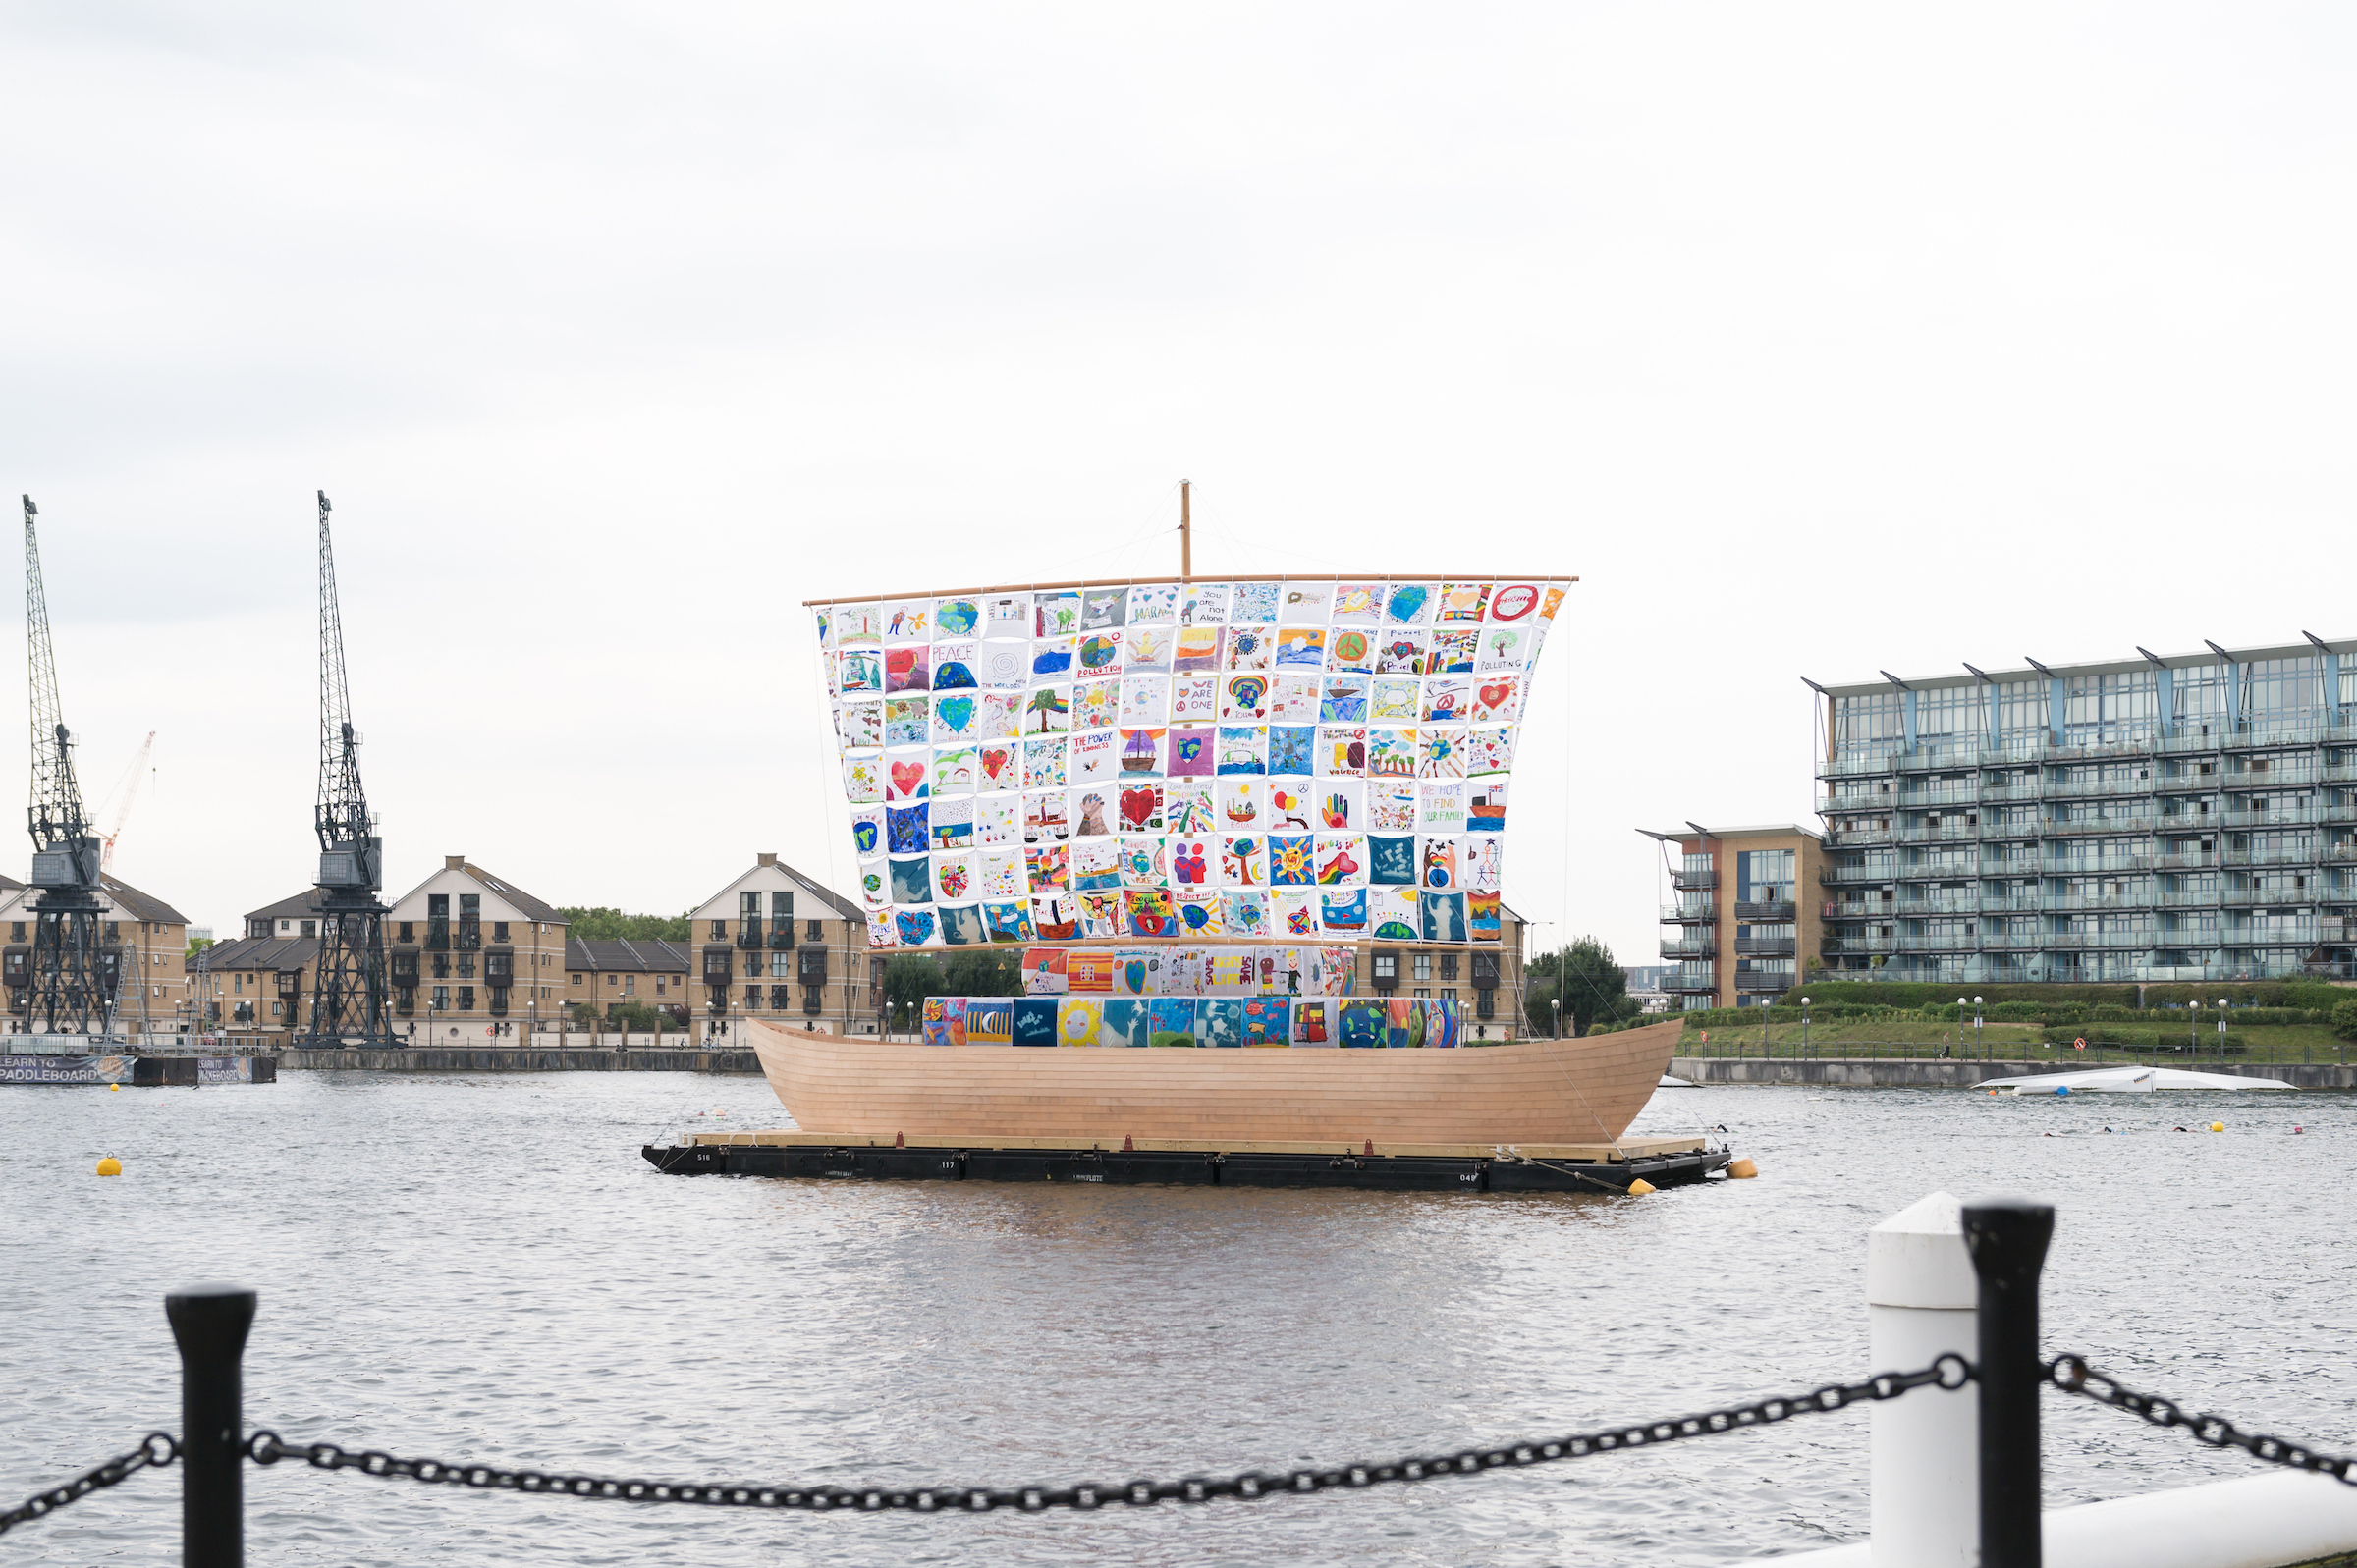 The Ship of Tolerance in the Royal Docks